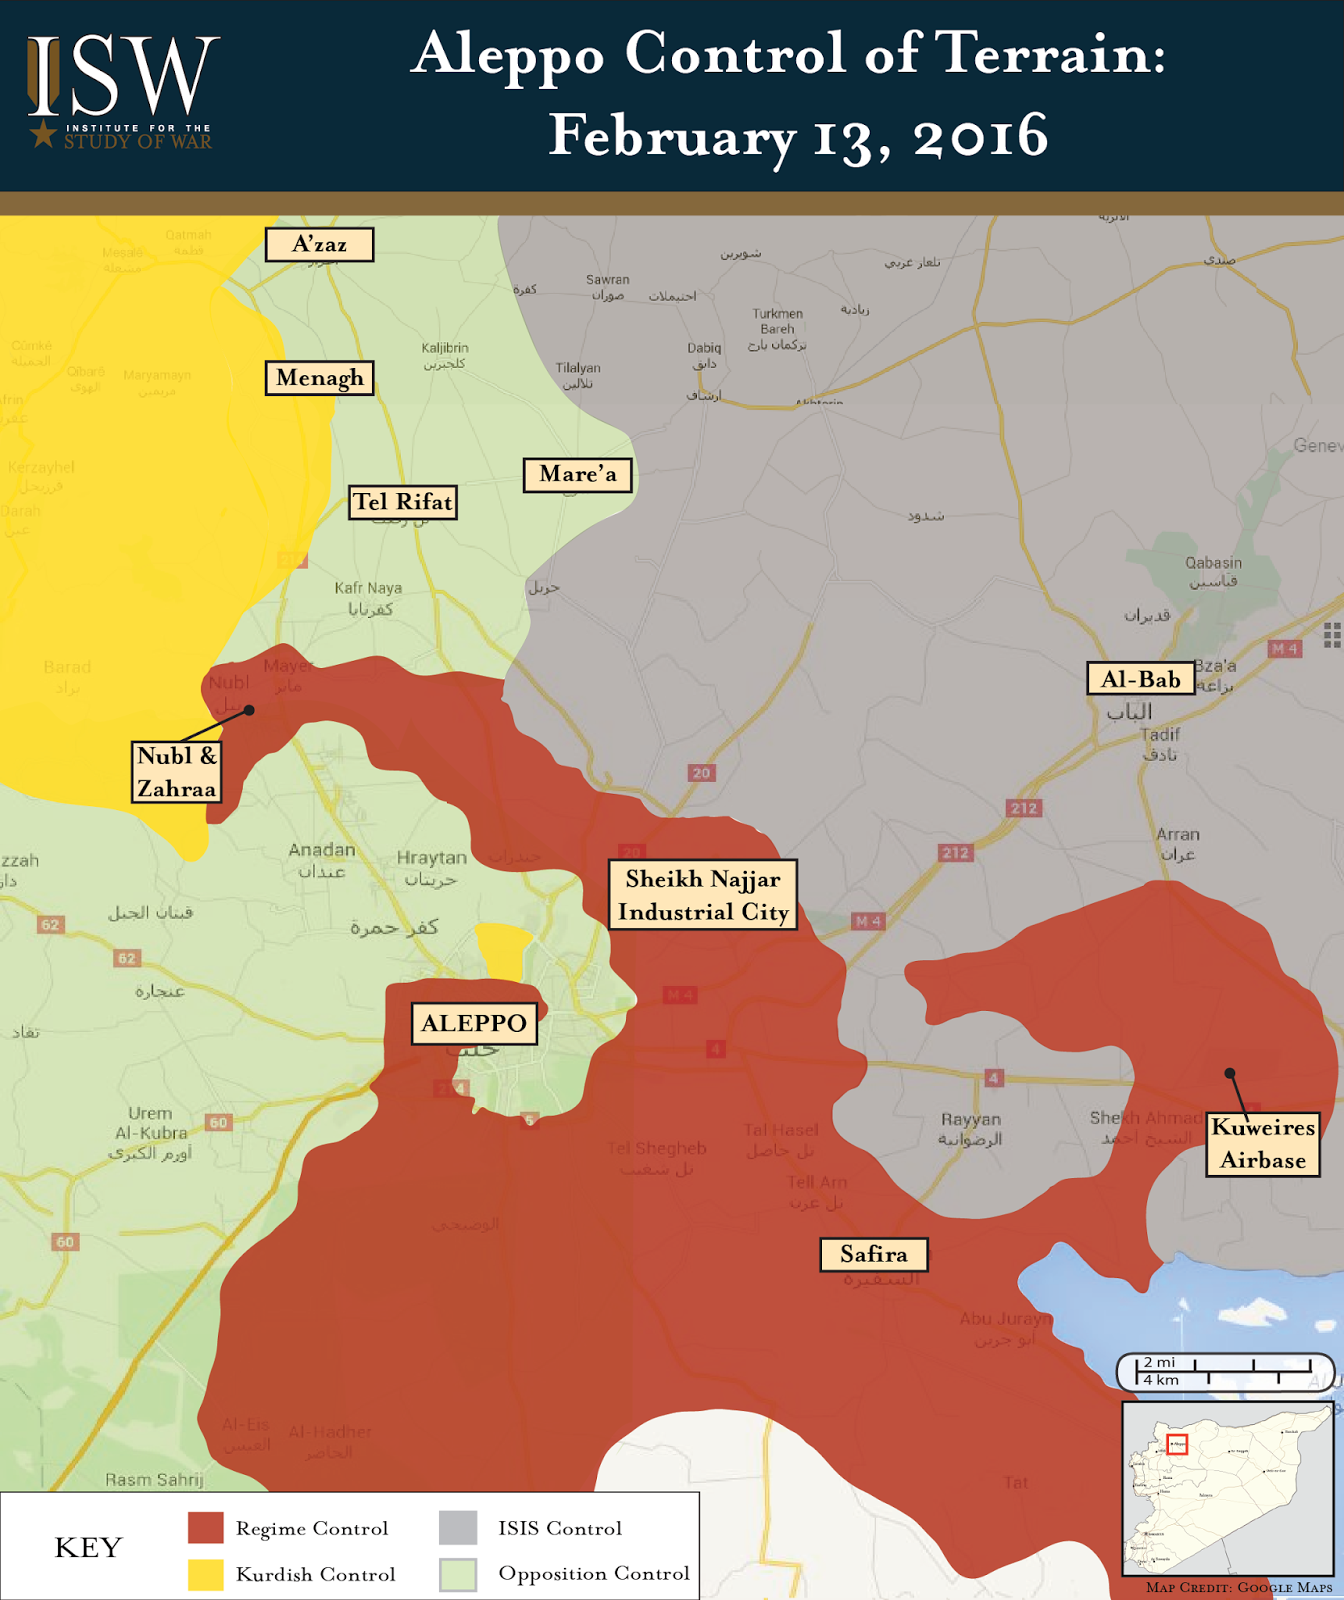 Aleppo Control Map - Aleppo Backgrounder FEB 2016-01 (4)